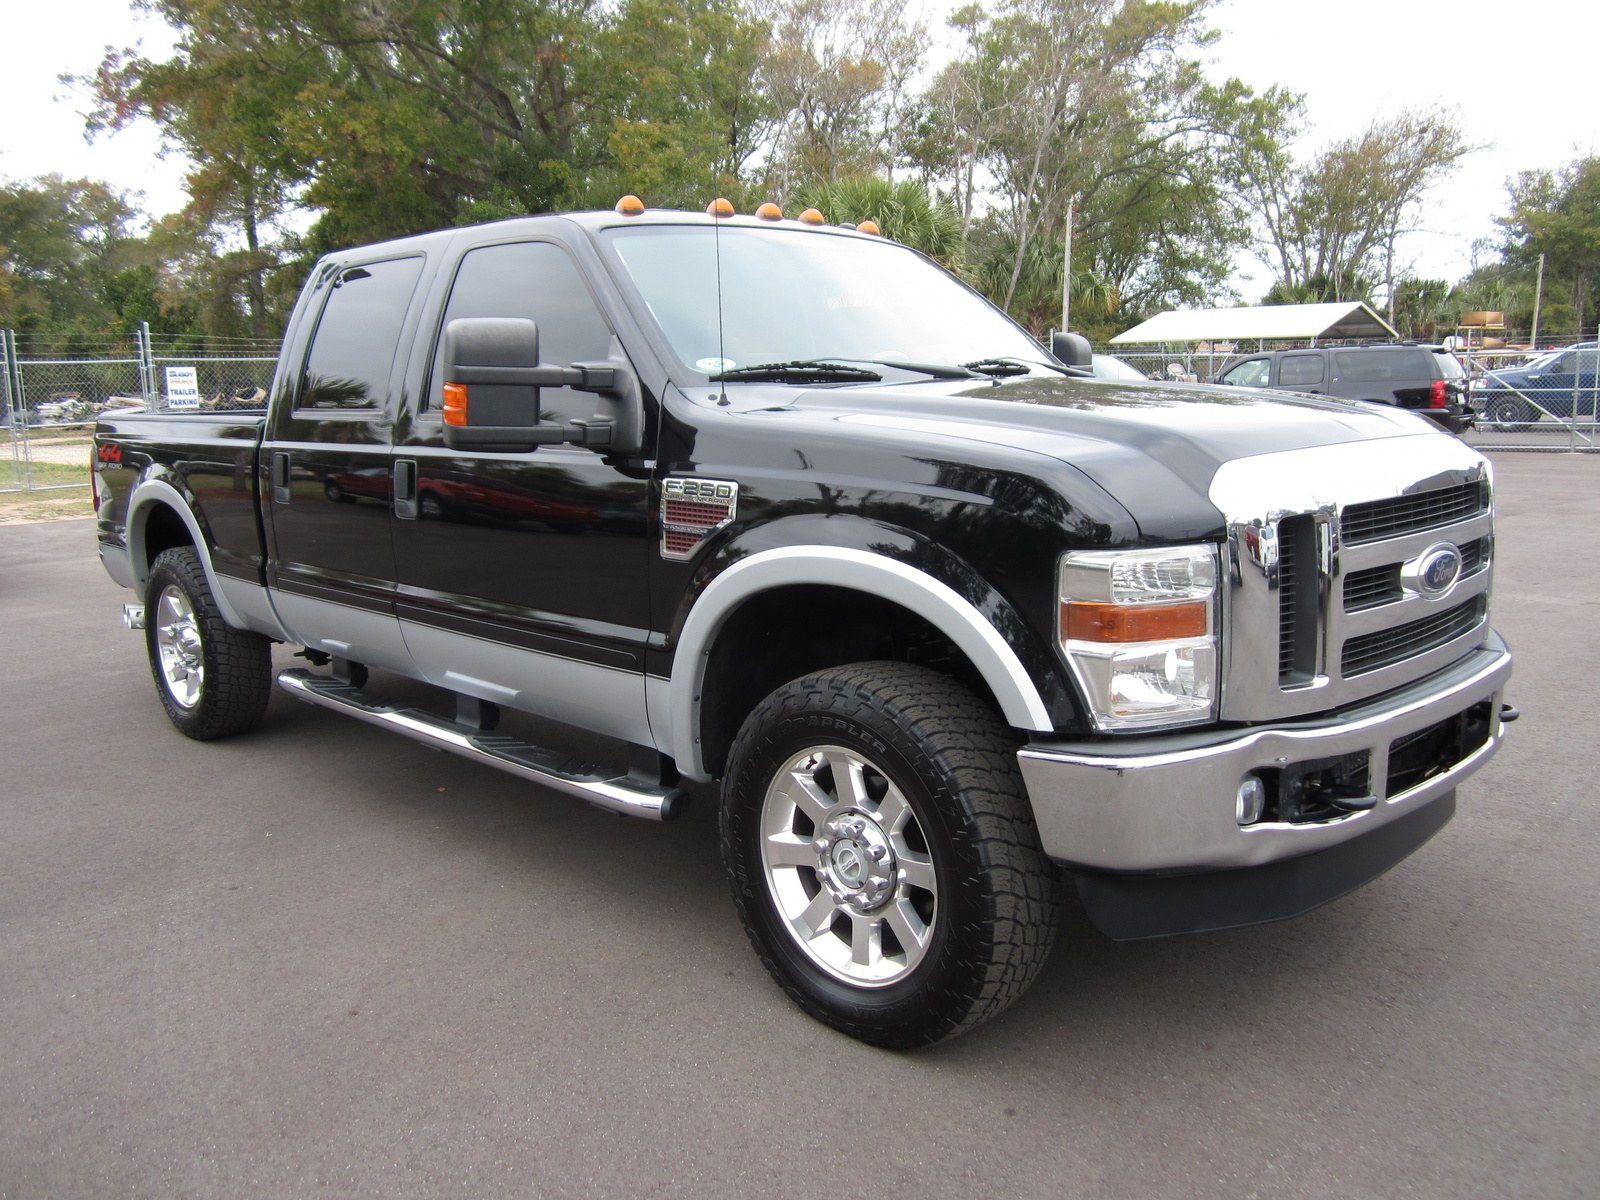 2008 ford f 350 super duty pictures cargurus. Black Bedroom Furniture Sets. Home Design Ideas